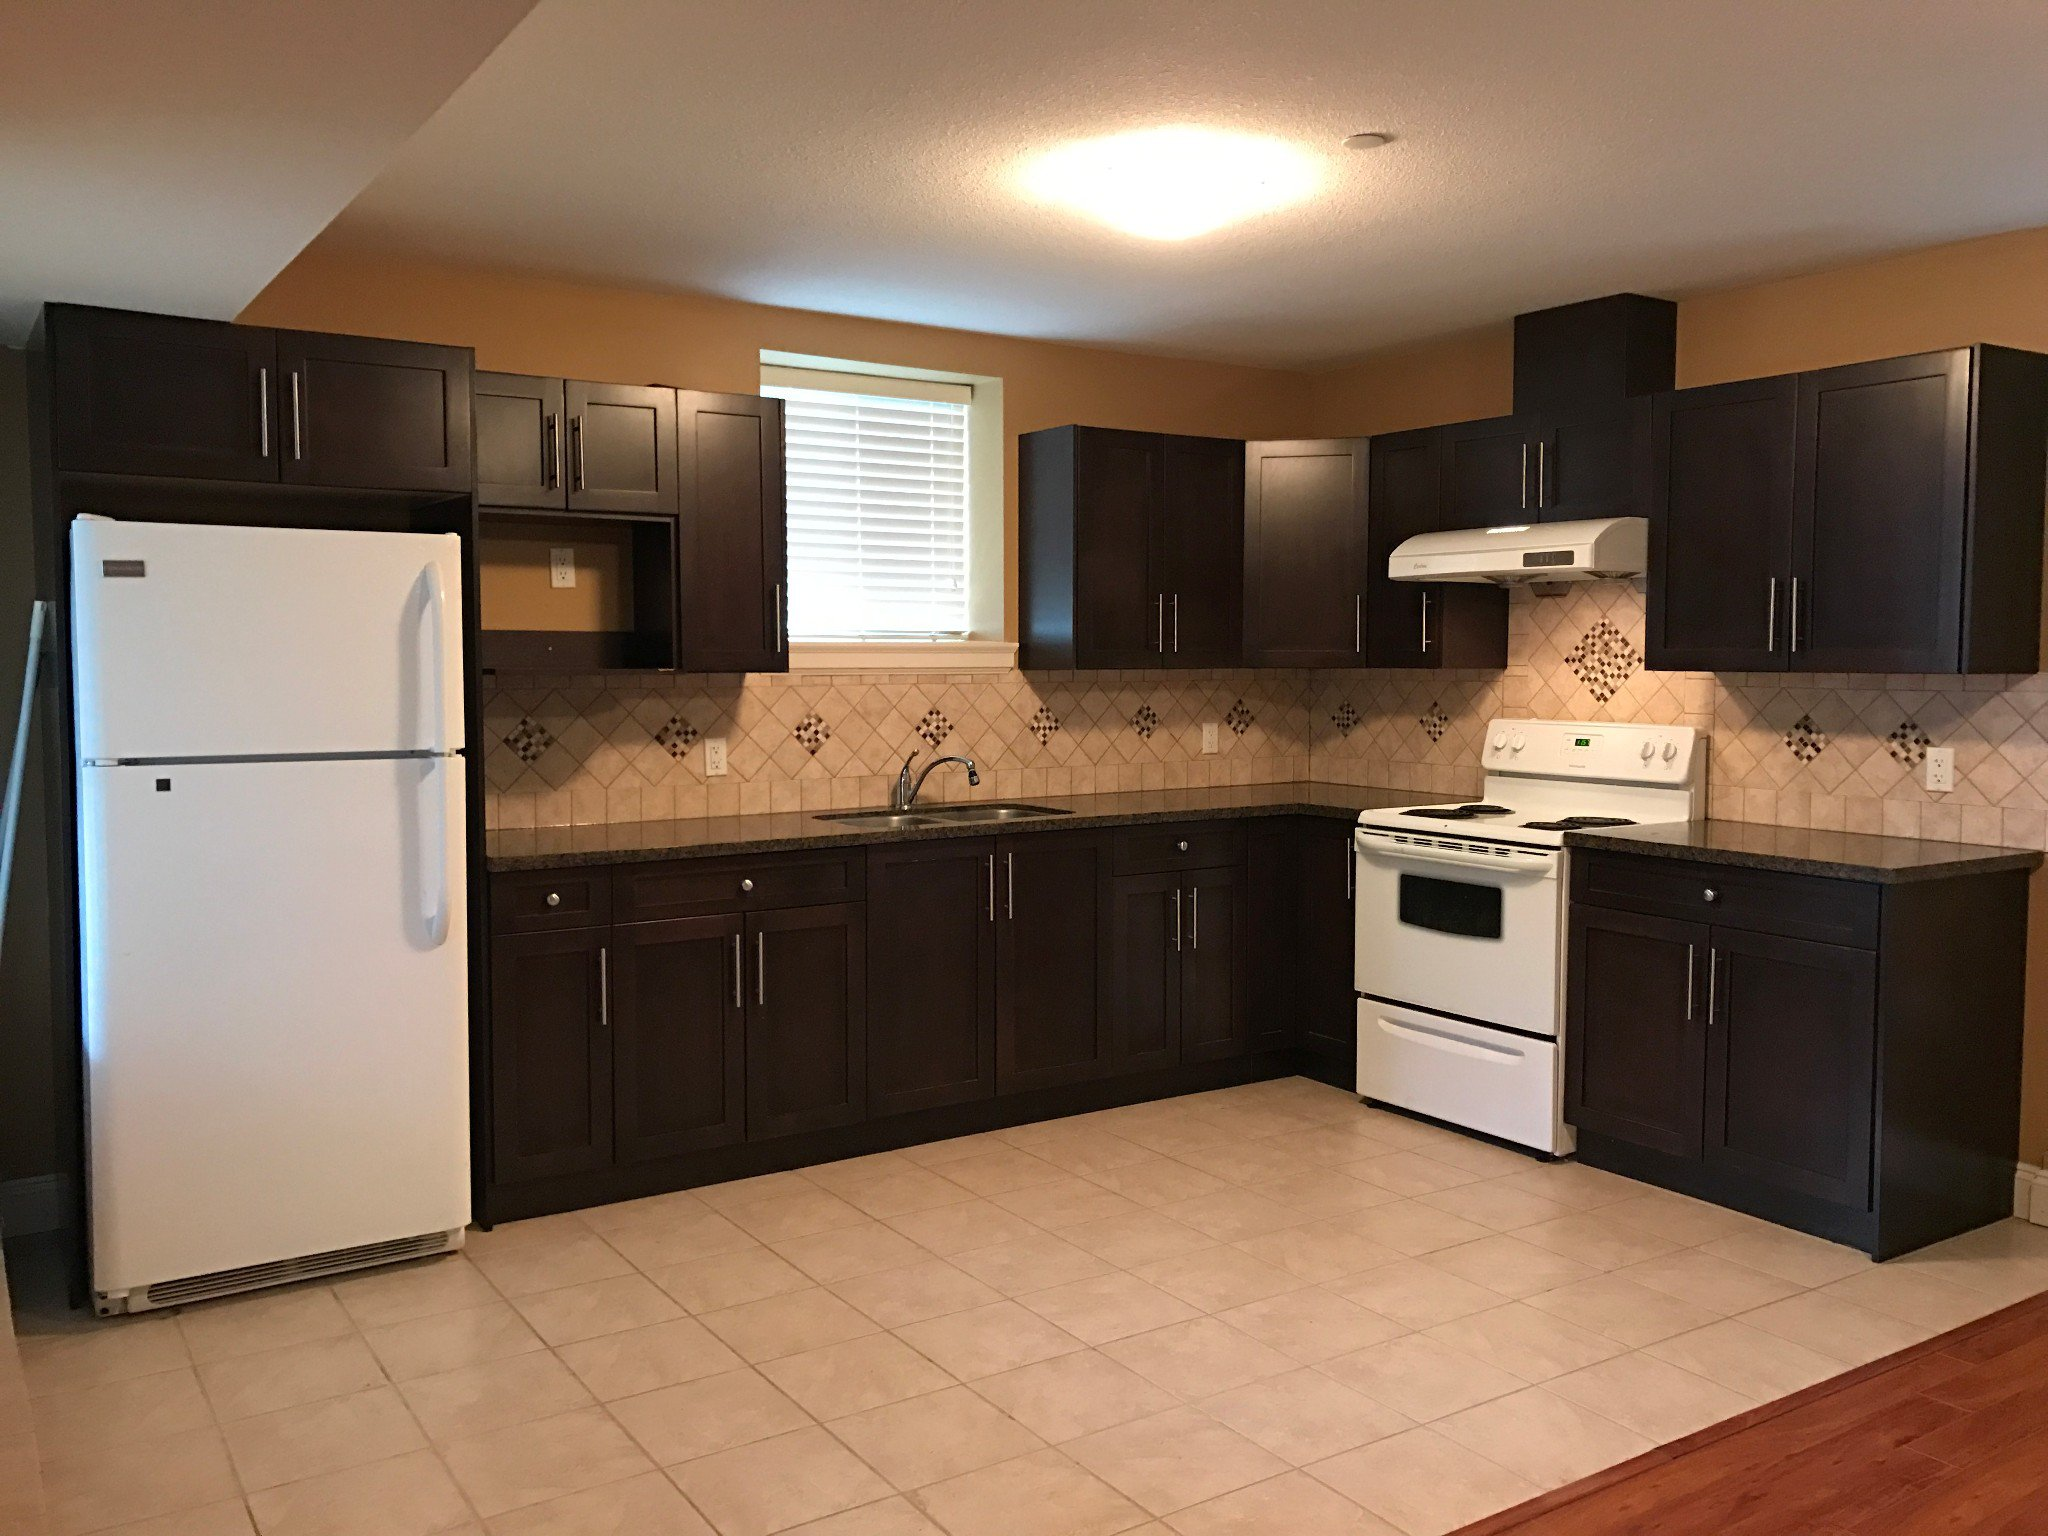 Main Photo: BSMT 31787 Carlsrue Ave. in Abbotsford: Abbotsford West Condo for rent